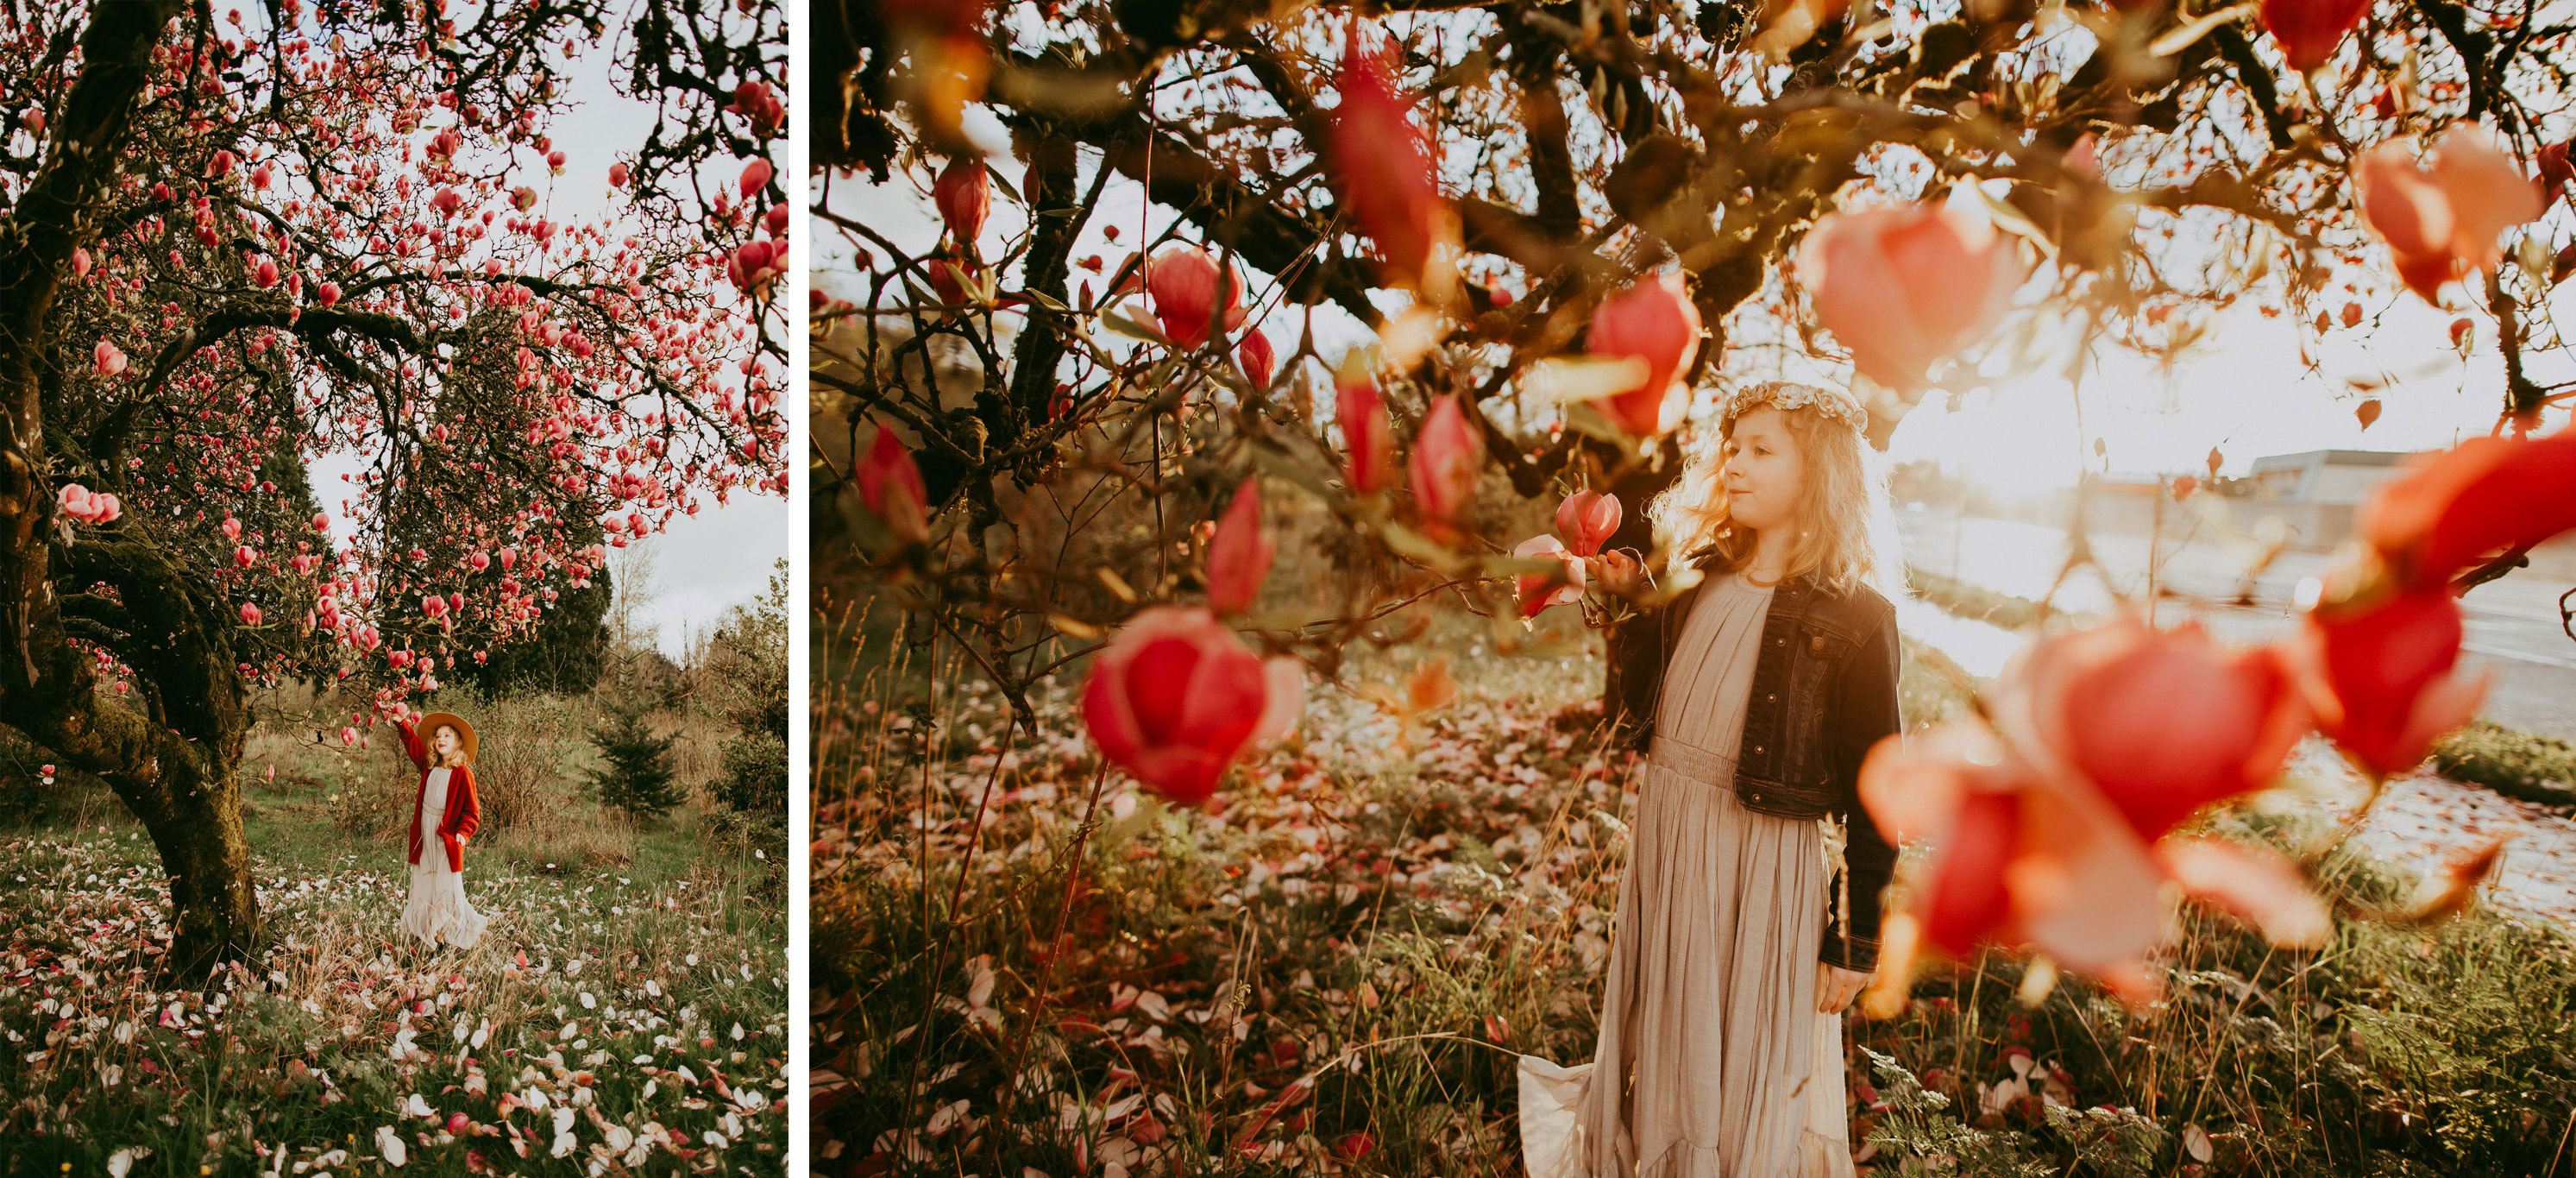 spring photos of a girl in a blooming spring tree